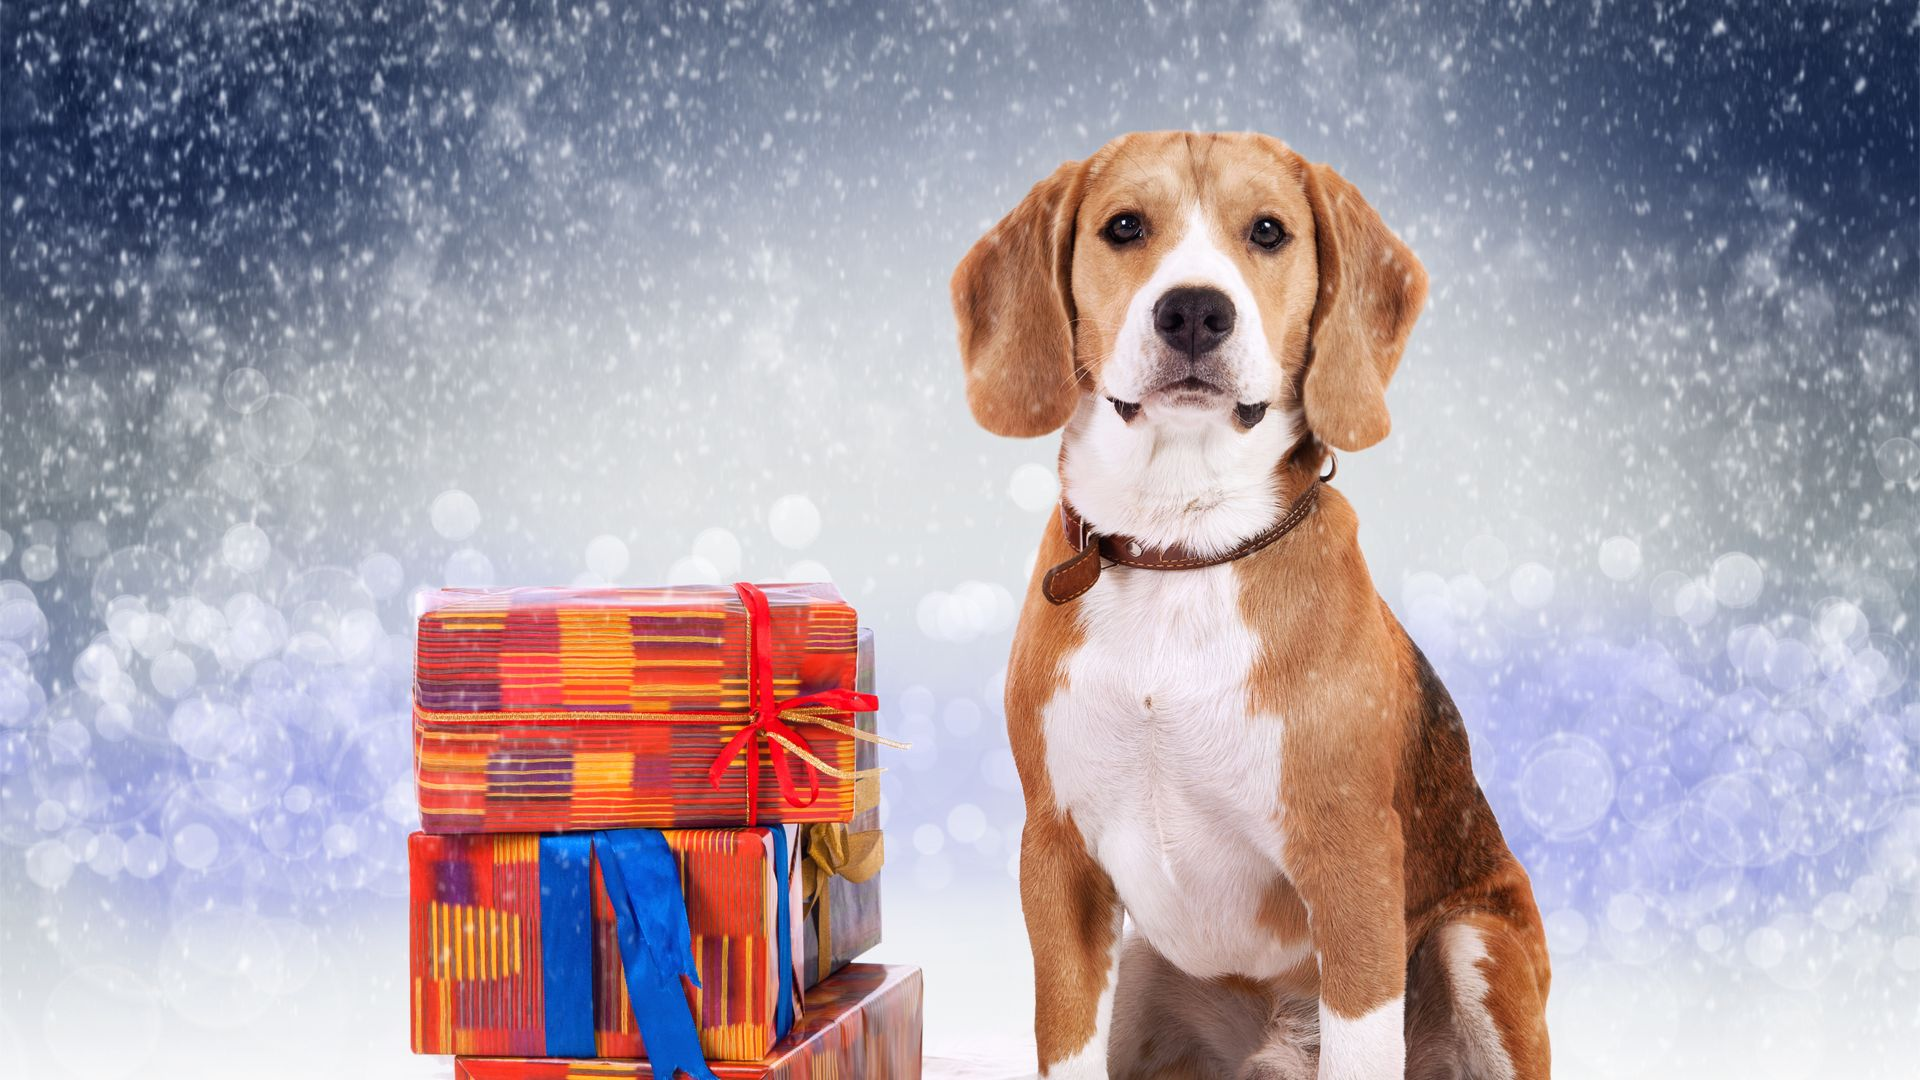 dog, cute animals, Christmas, New Year, 5k (horizontal)